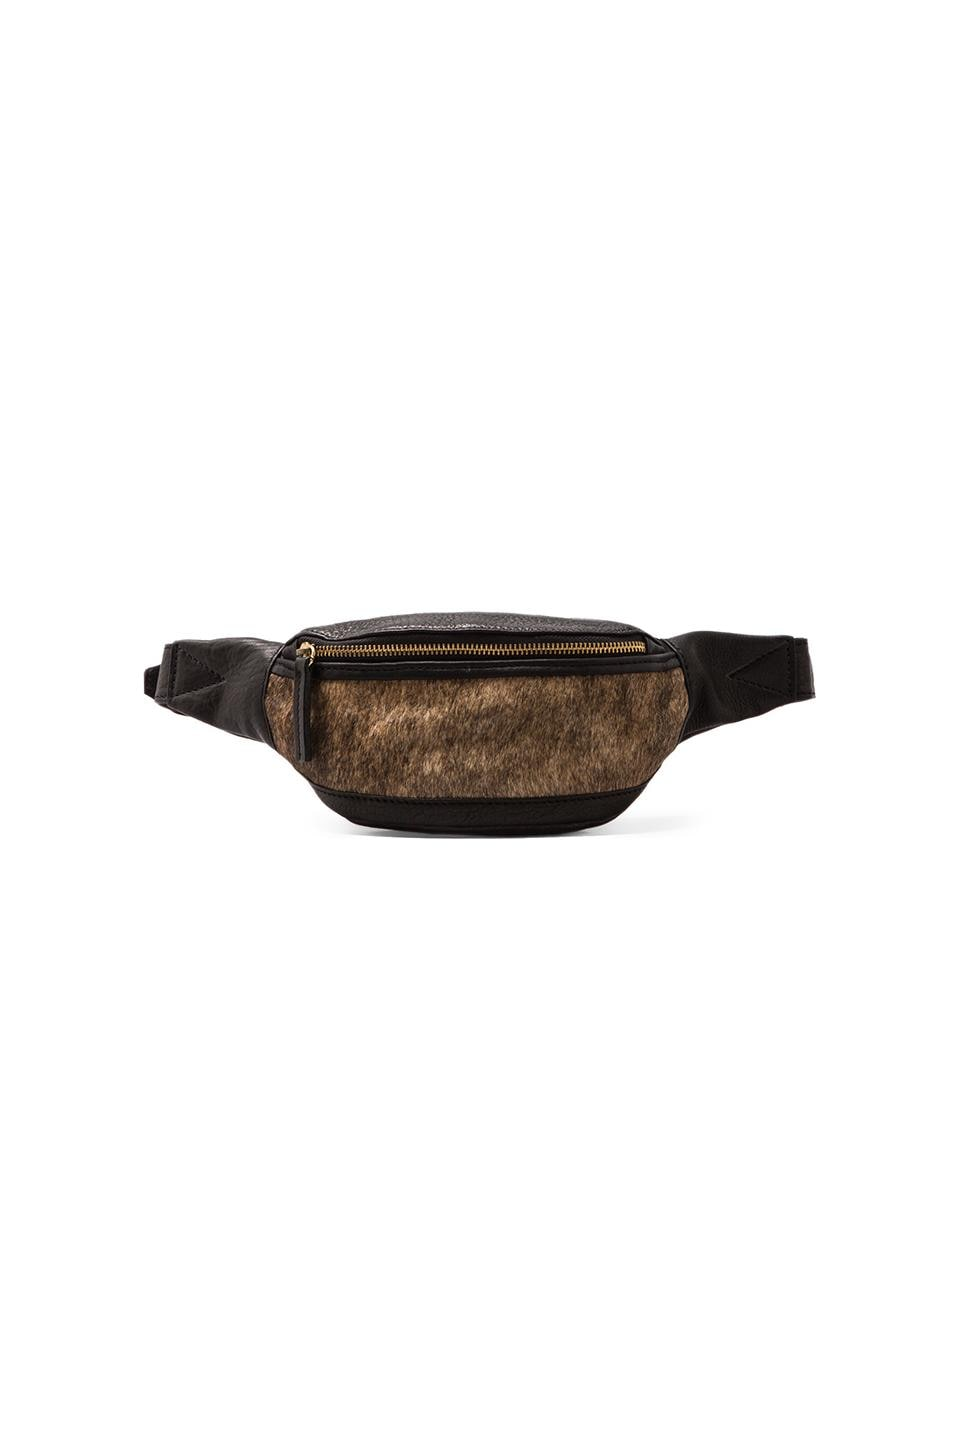 HARE + HART Calf Hair Fanny Pack in Black